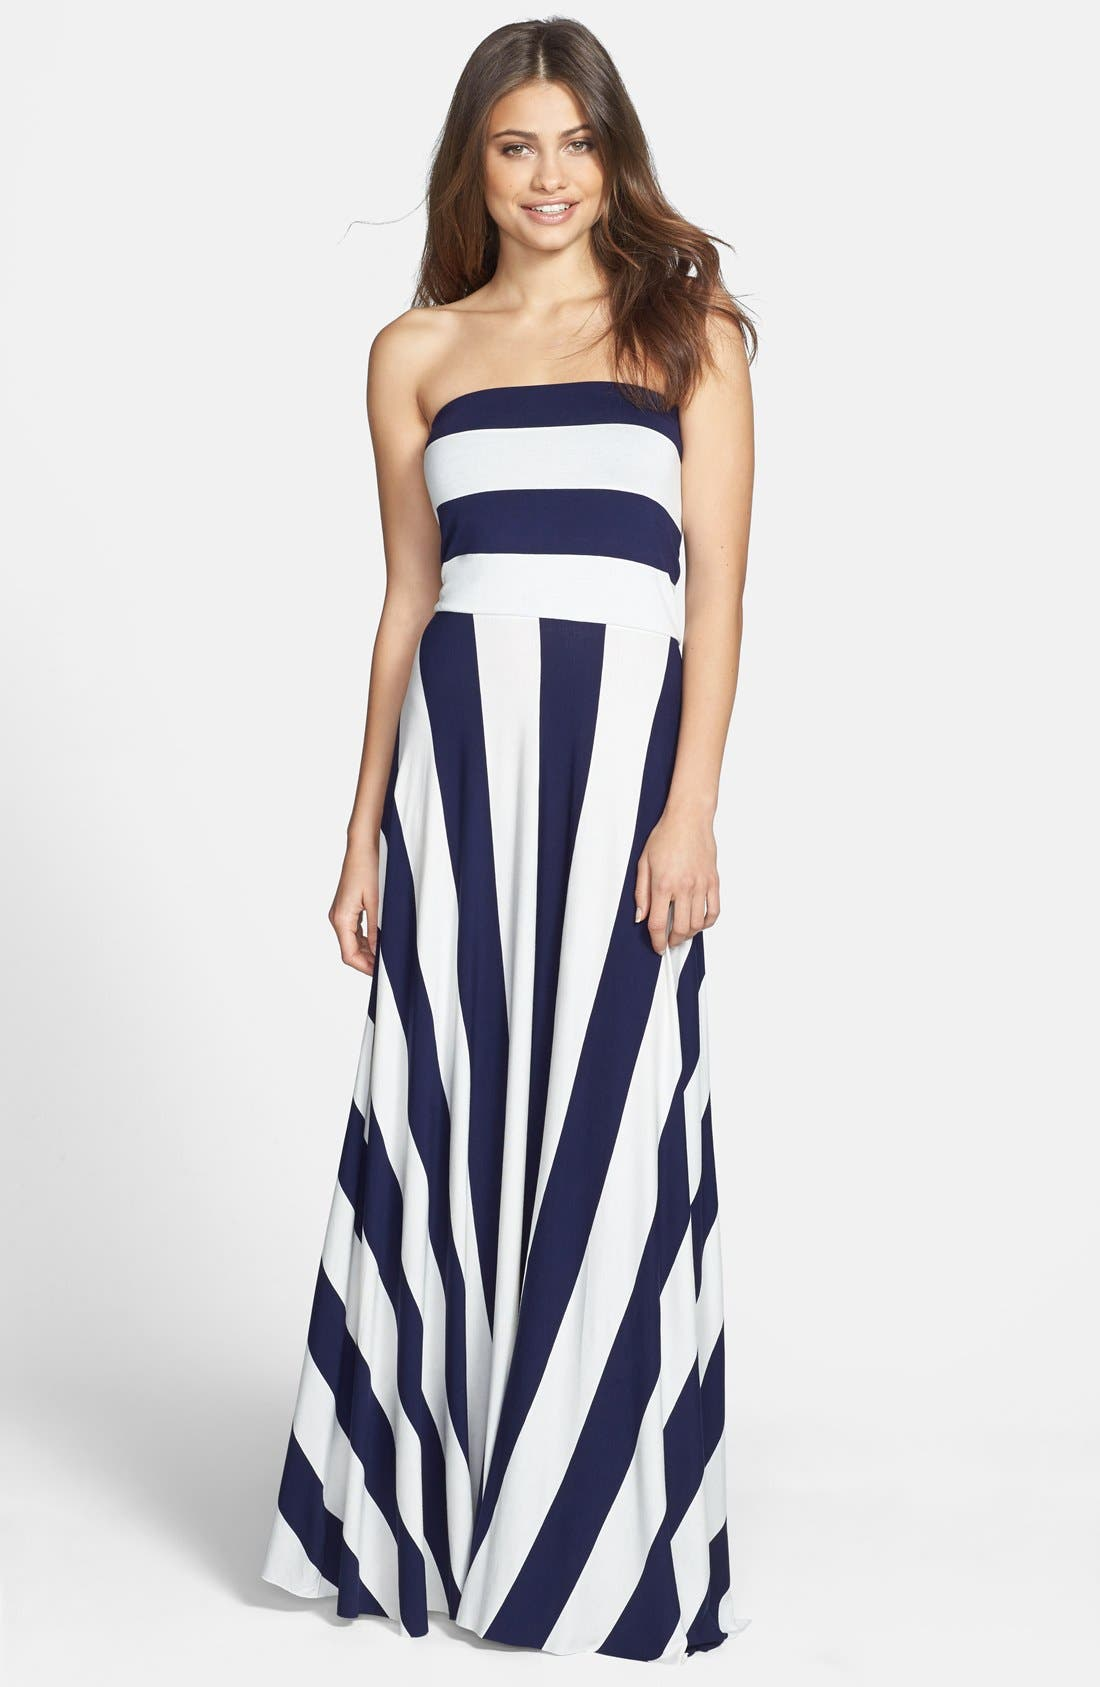 Main Image - Elan Stripe Convertible Bias Cut Cover-Up Maxi Dress